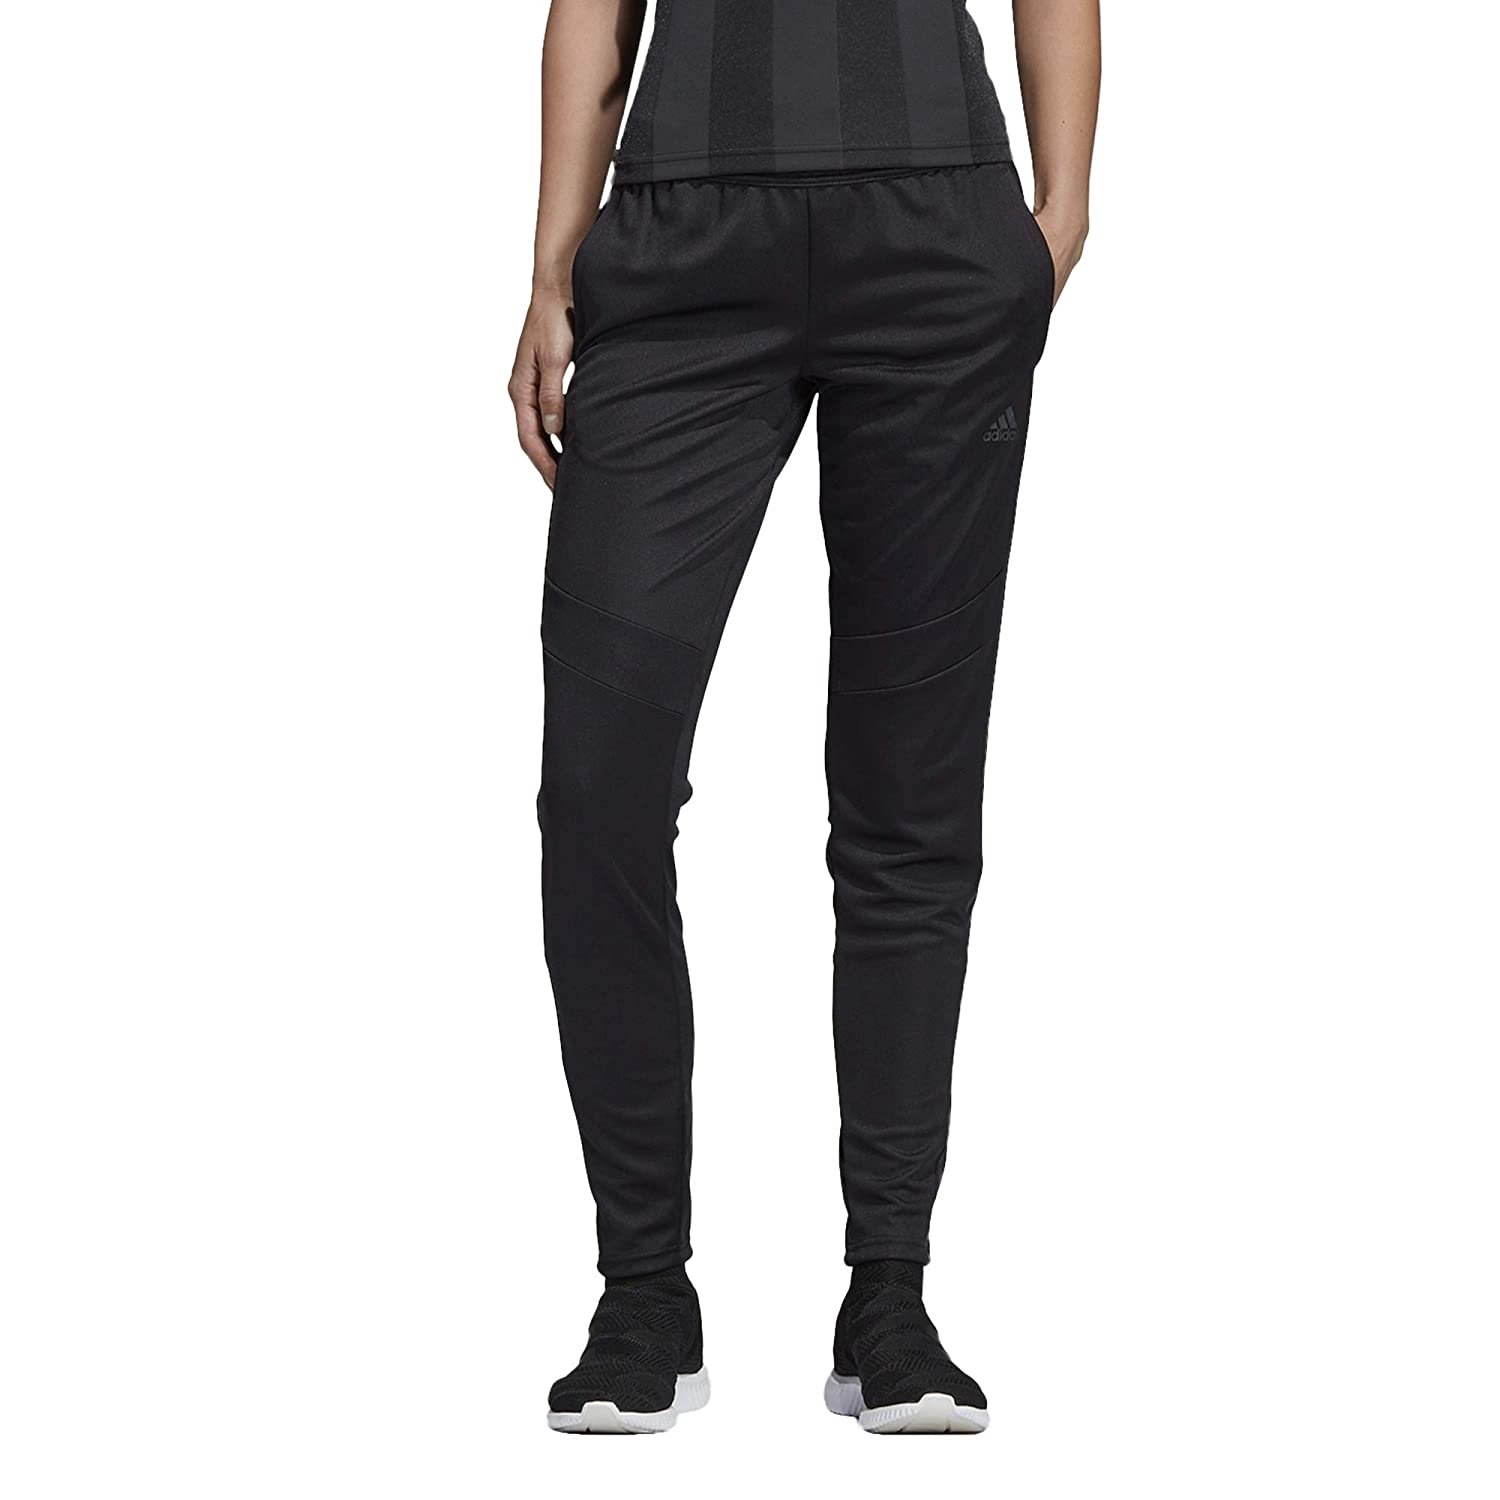 Black Carbon Pearl Essence adidas Women's Tiro19 Training Pants